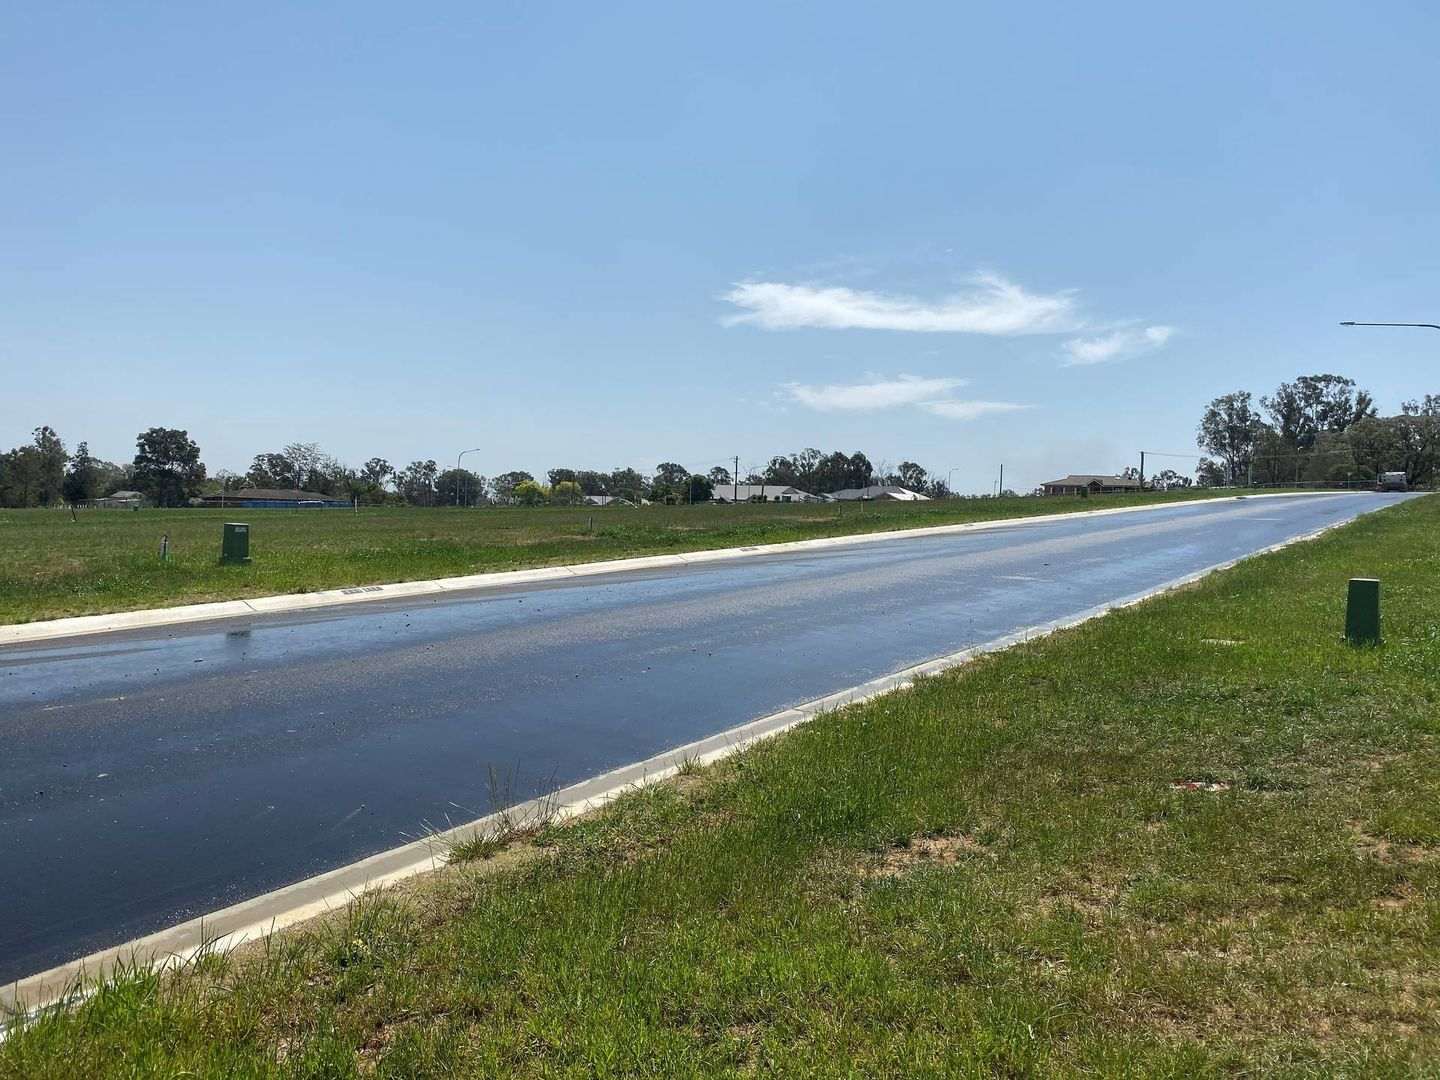 Lot 241 in Subdivision of 60-70 Seventh Avenue, Austral NSW 2179, Image 1